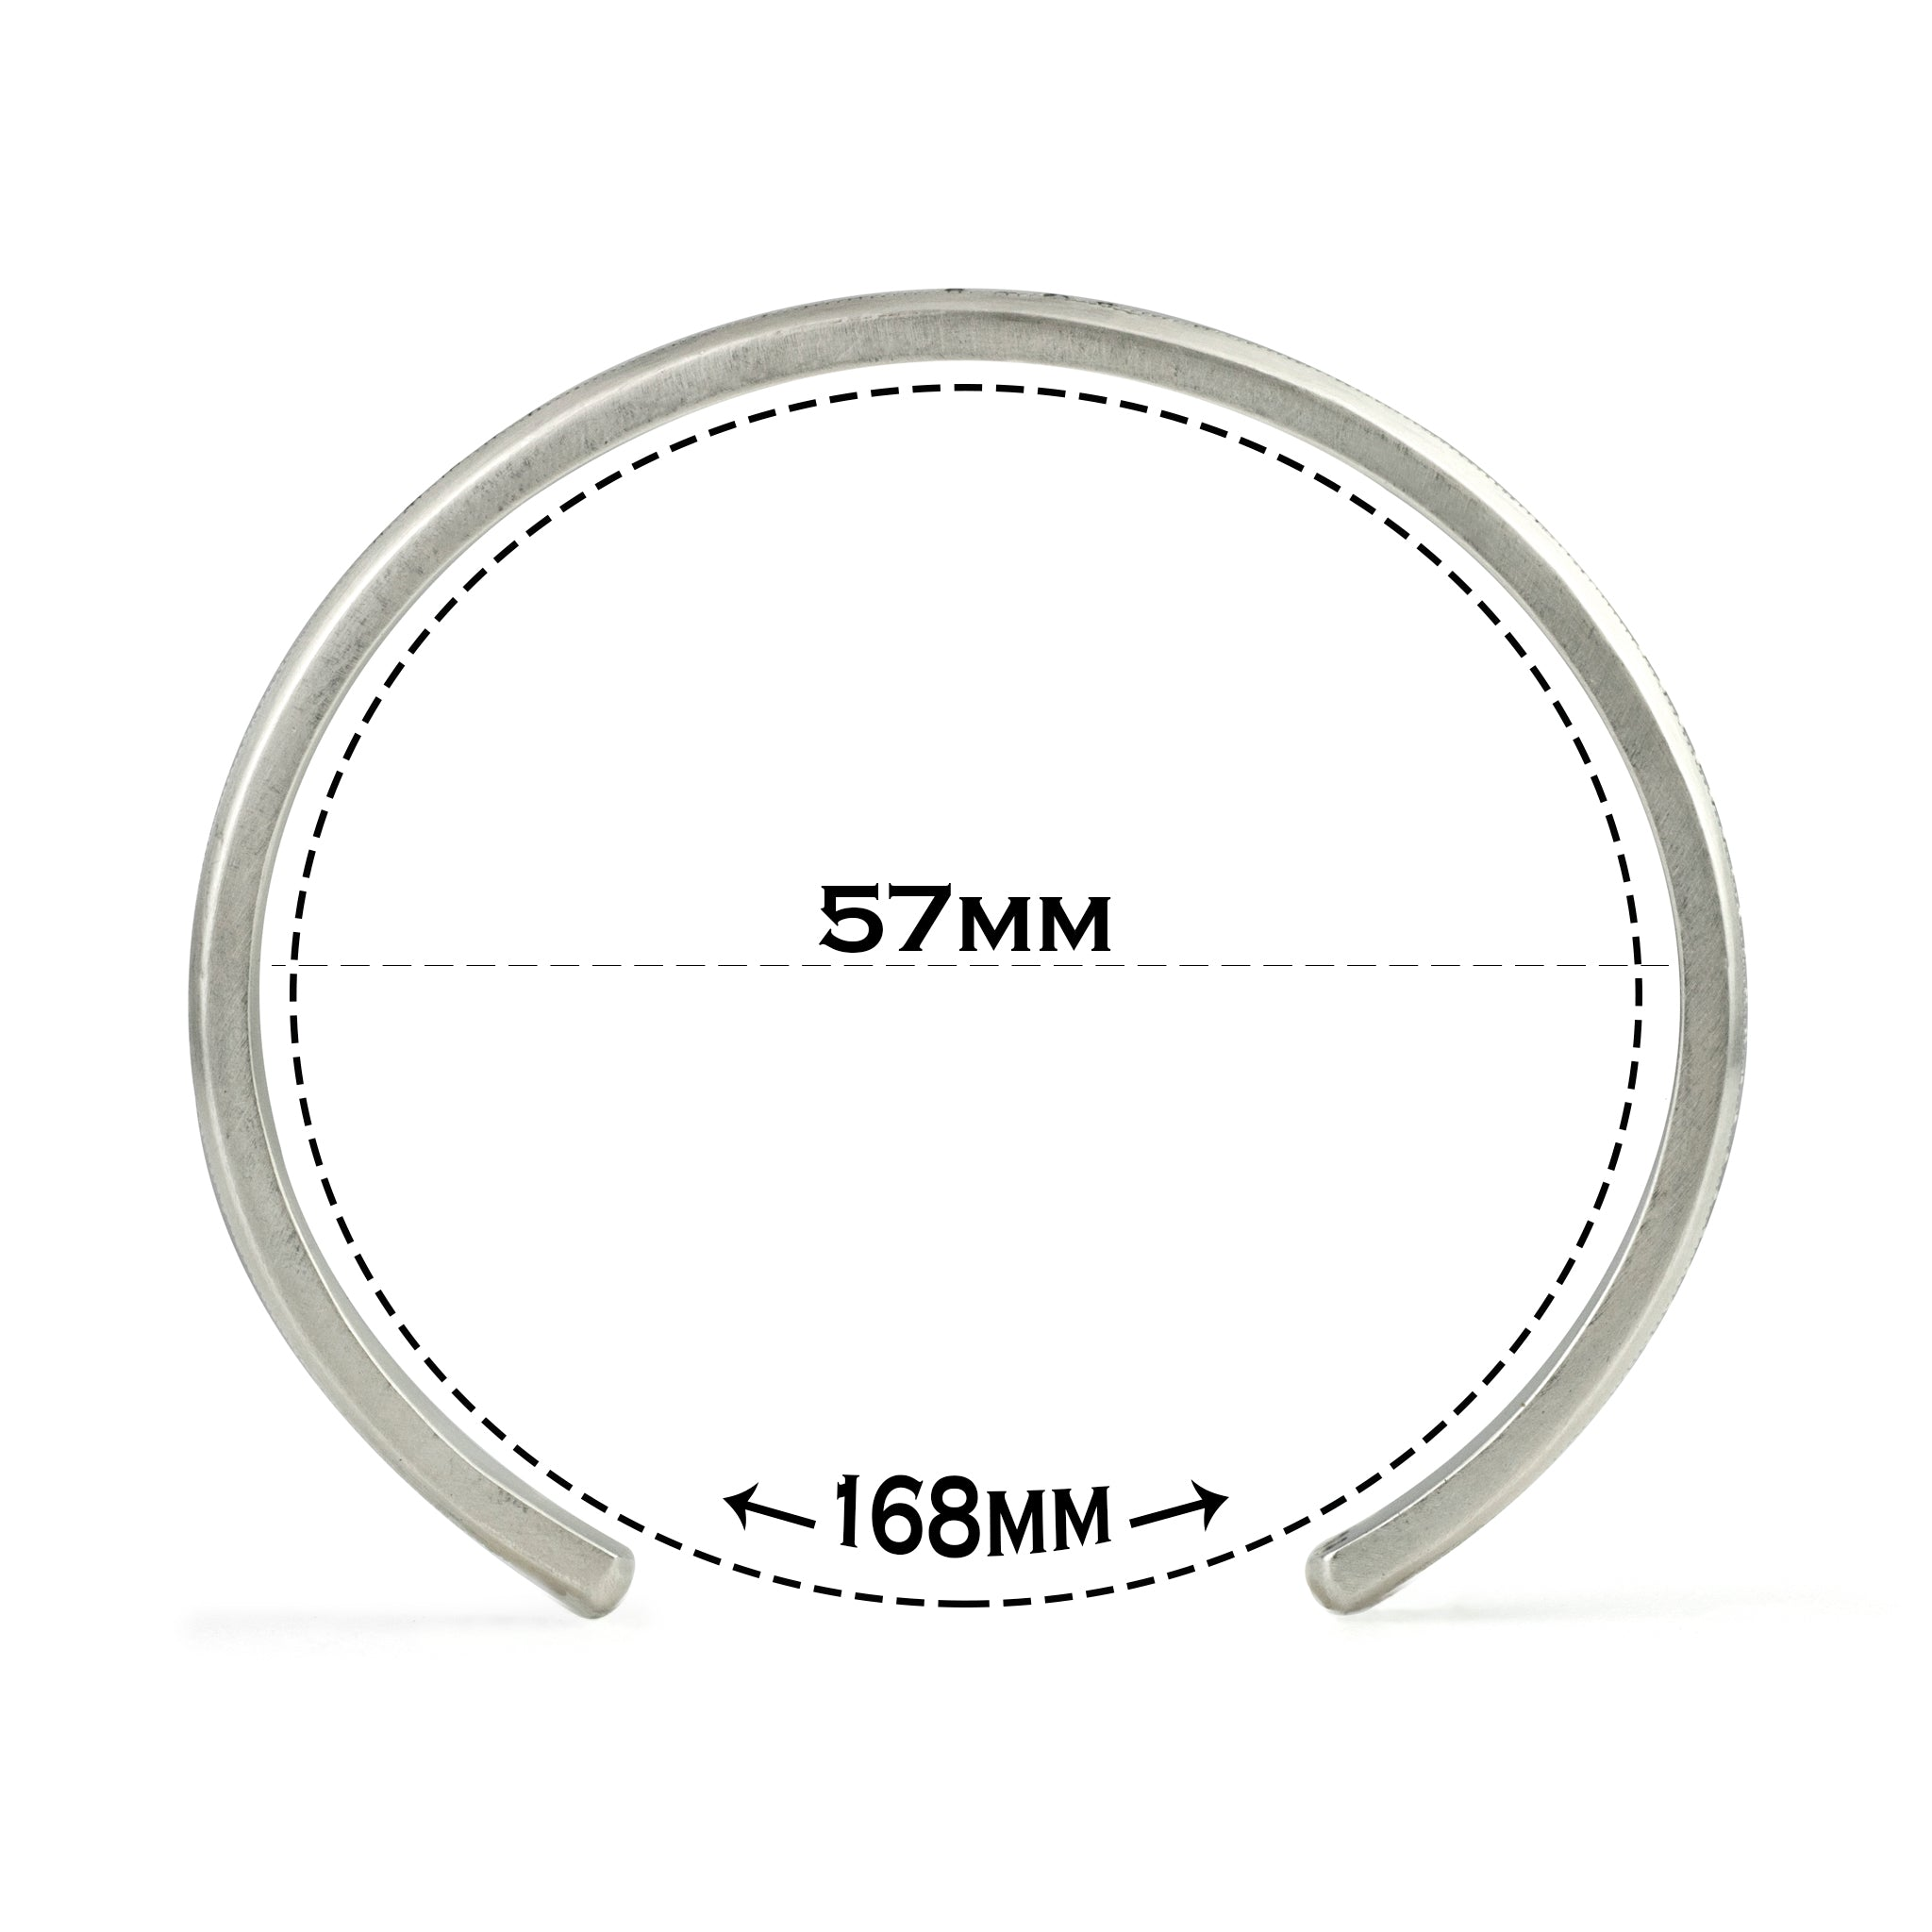 Small size cuff with text explaining the 168 millimeter circumference and illustrating size difference next to images of other sizes.